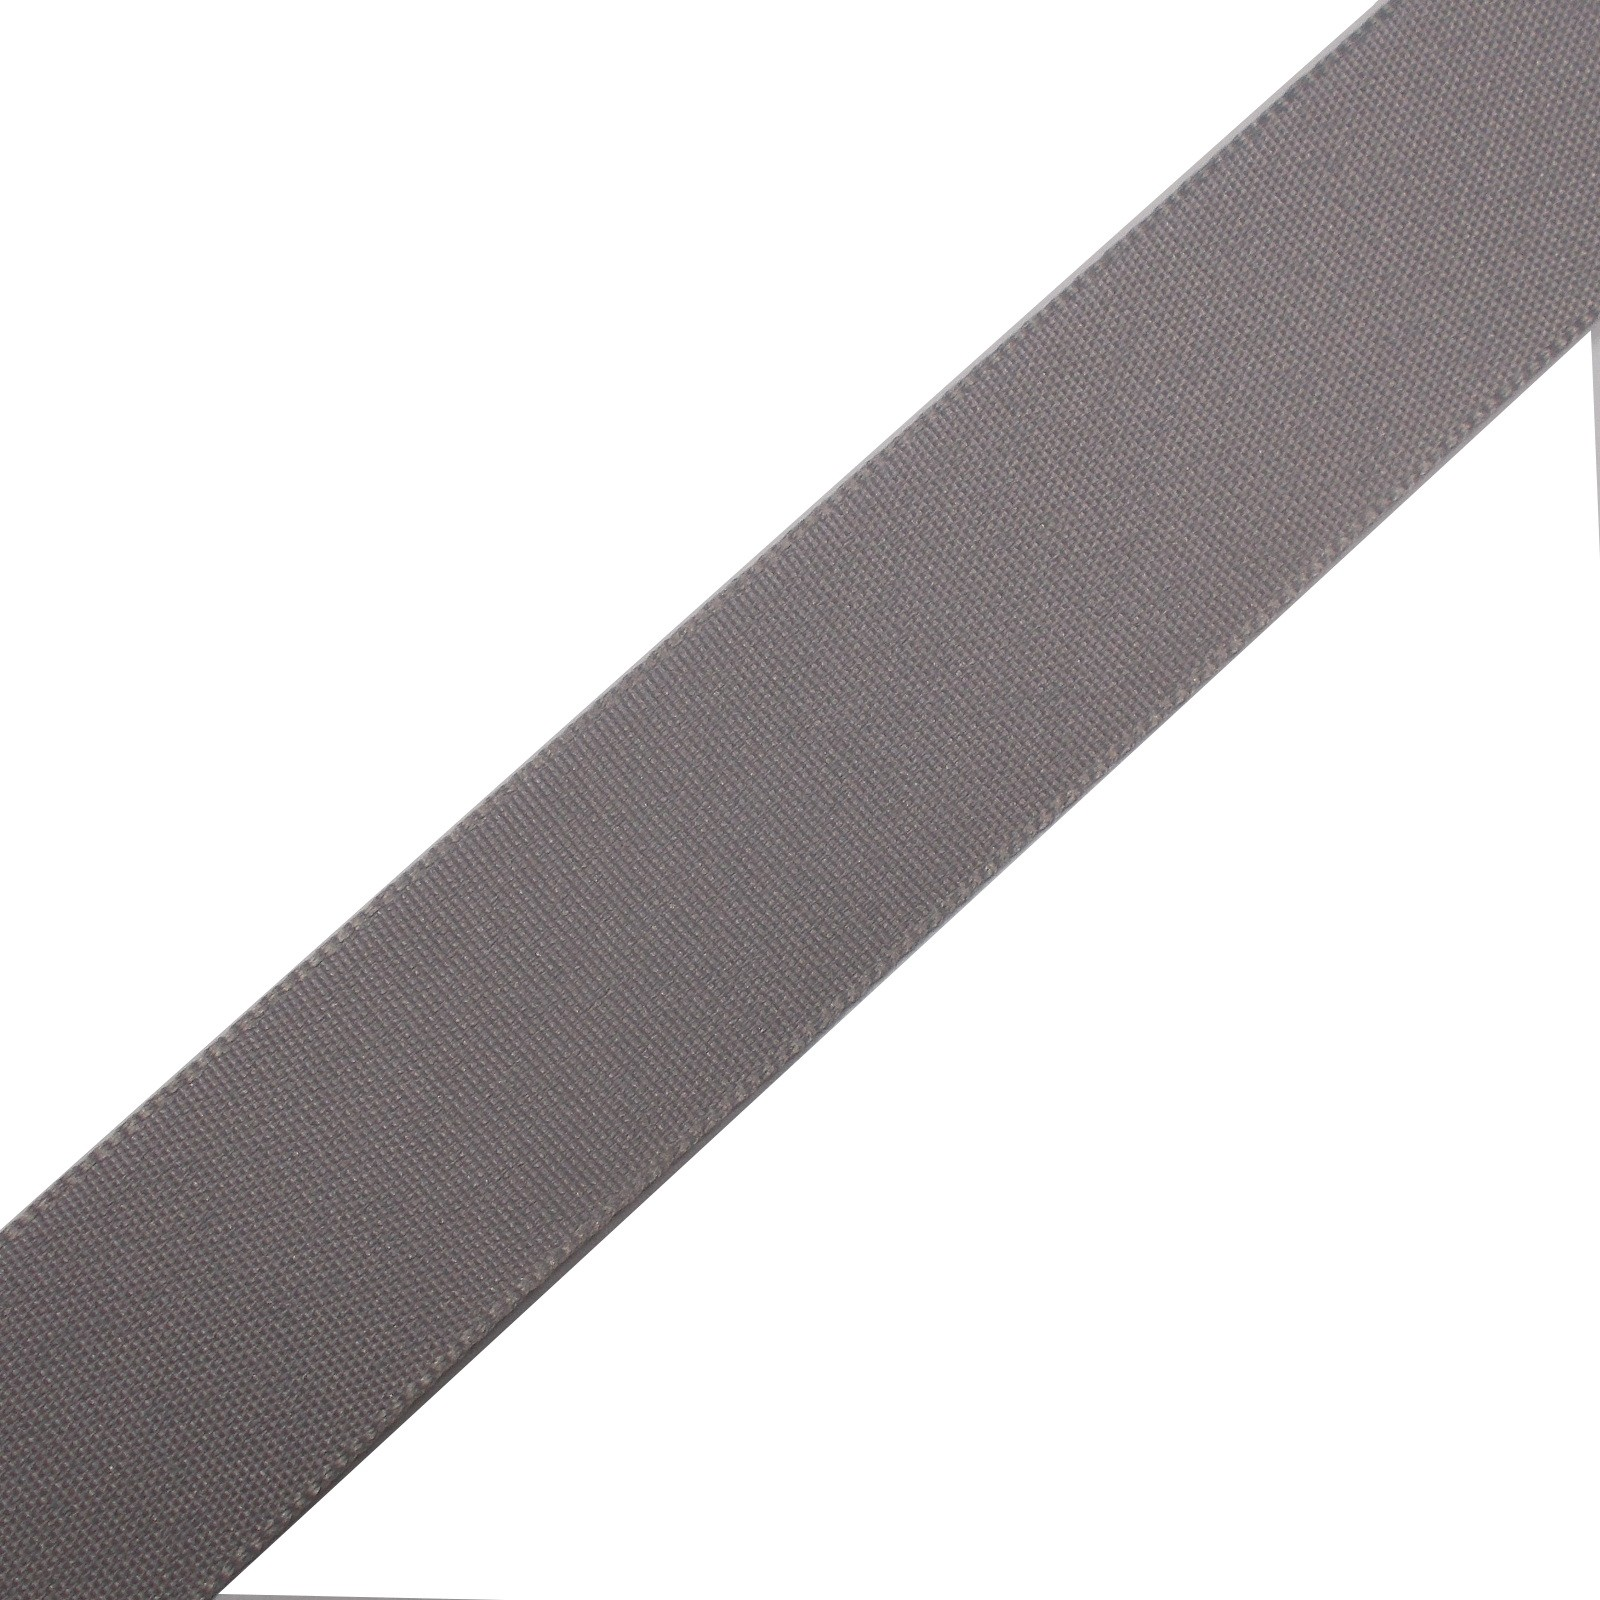 Berisfords Seam Binding Polyester Ribbon Tape 25mm wide Light Grey 2 metre length